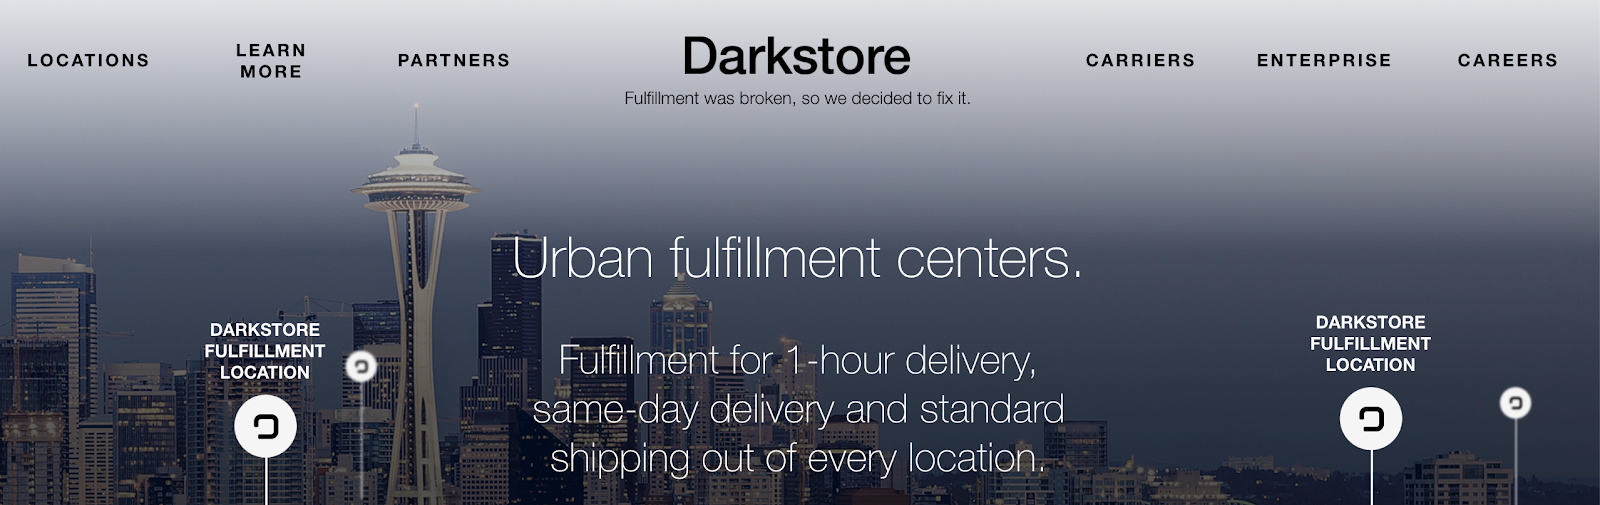 Darkstore offers fulfillment options for smaller companies.